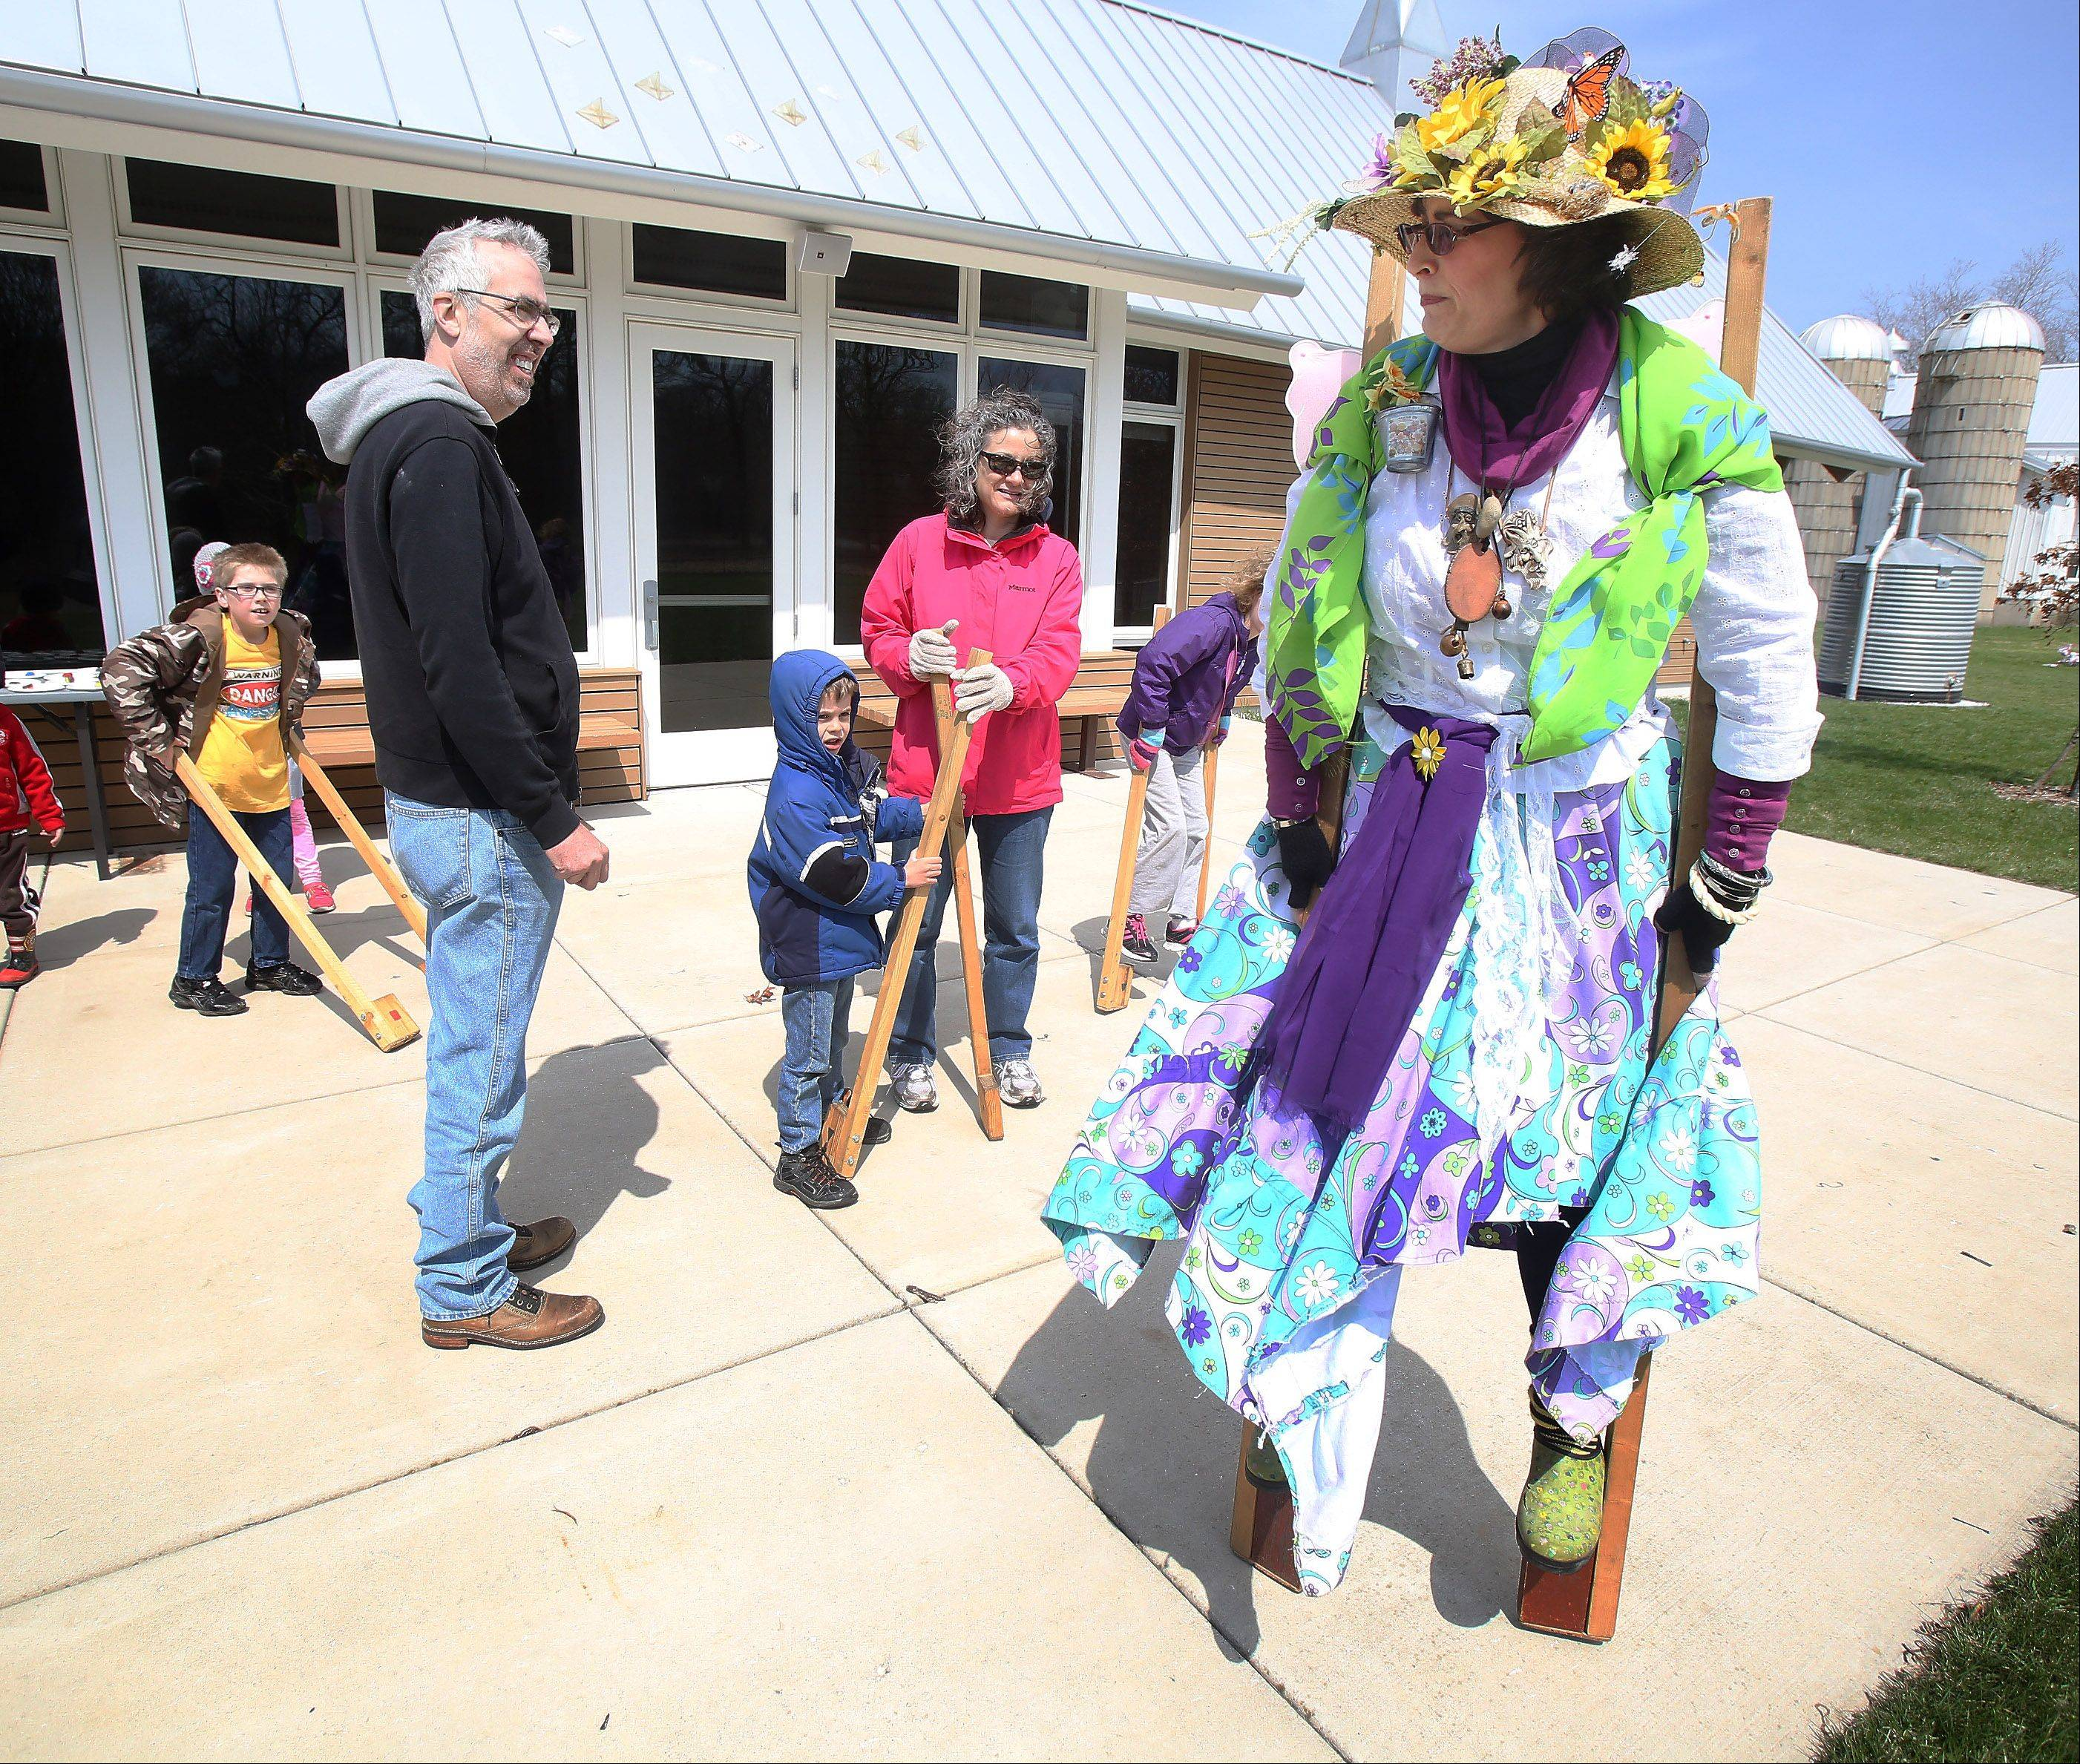 Mother Nature, played by Janice Aull, teaches children how to walk on stilts during the Spring Celebration event Sunday at Ryerson Conservation Area in Riverwoods.